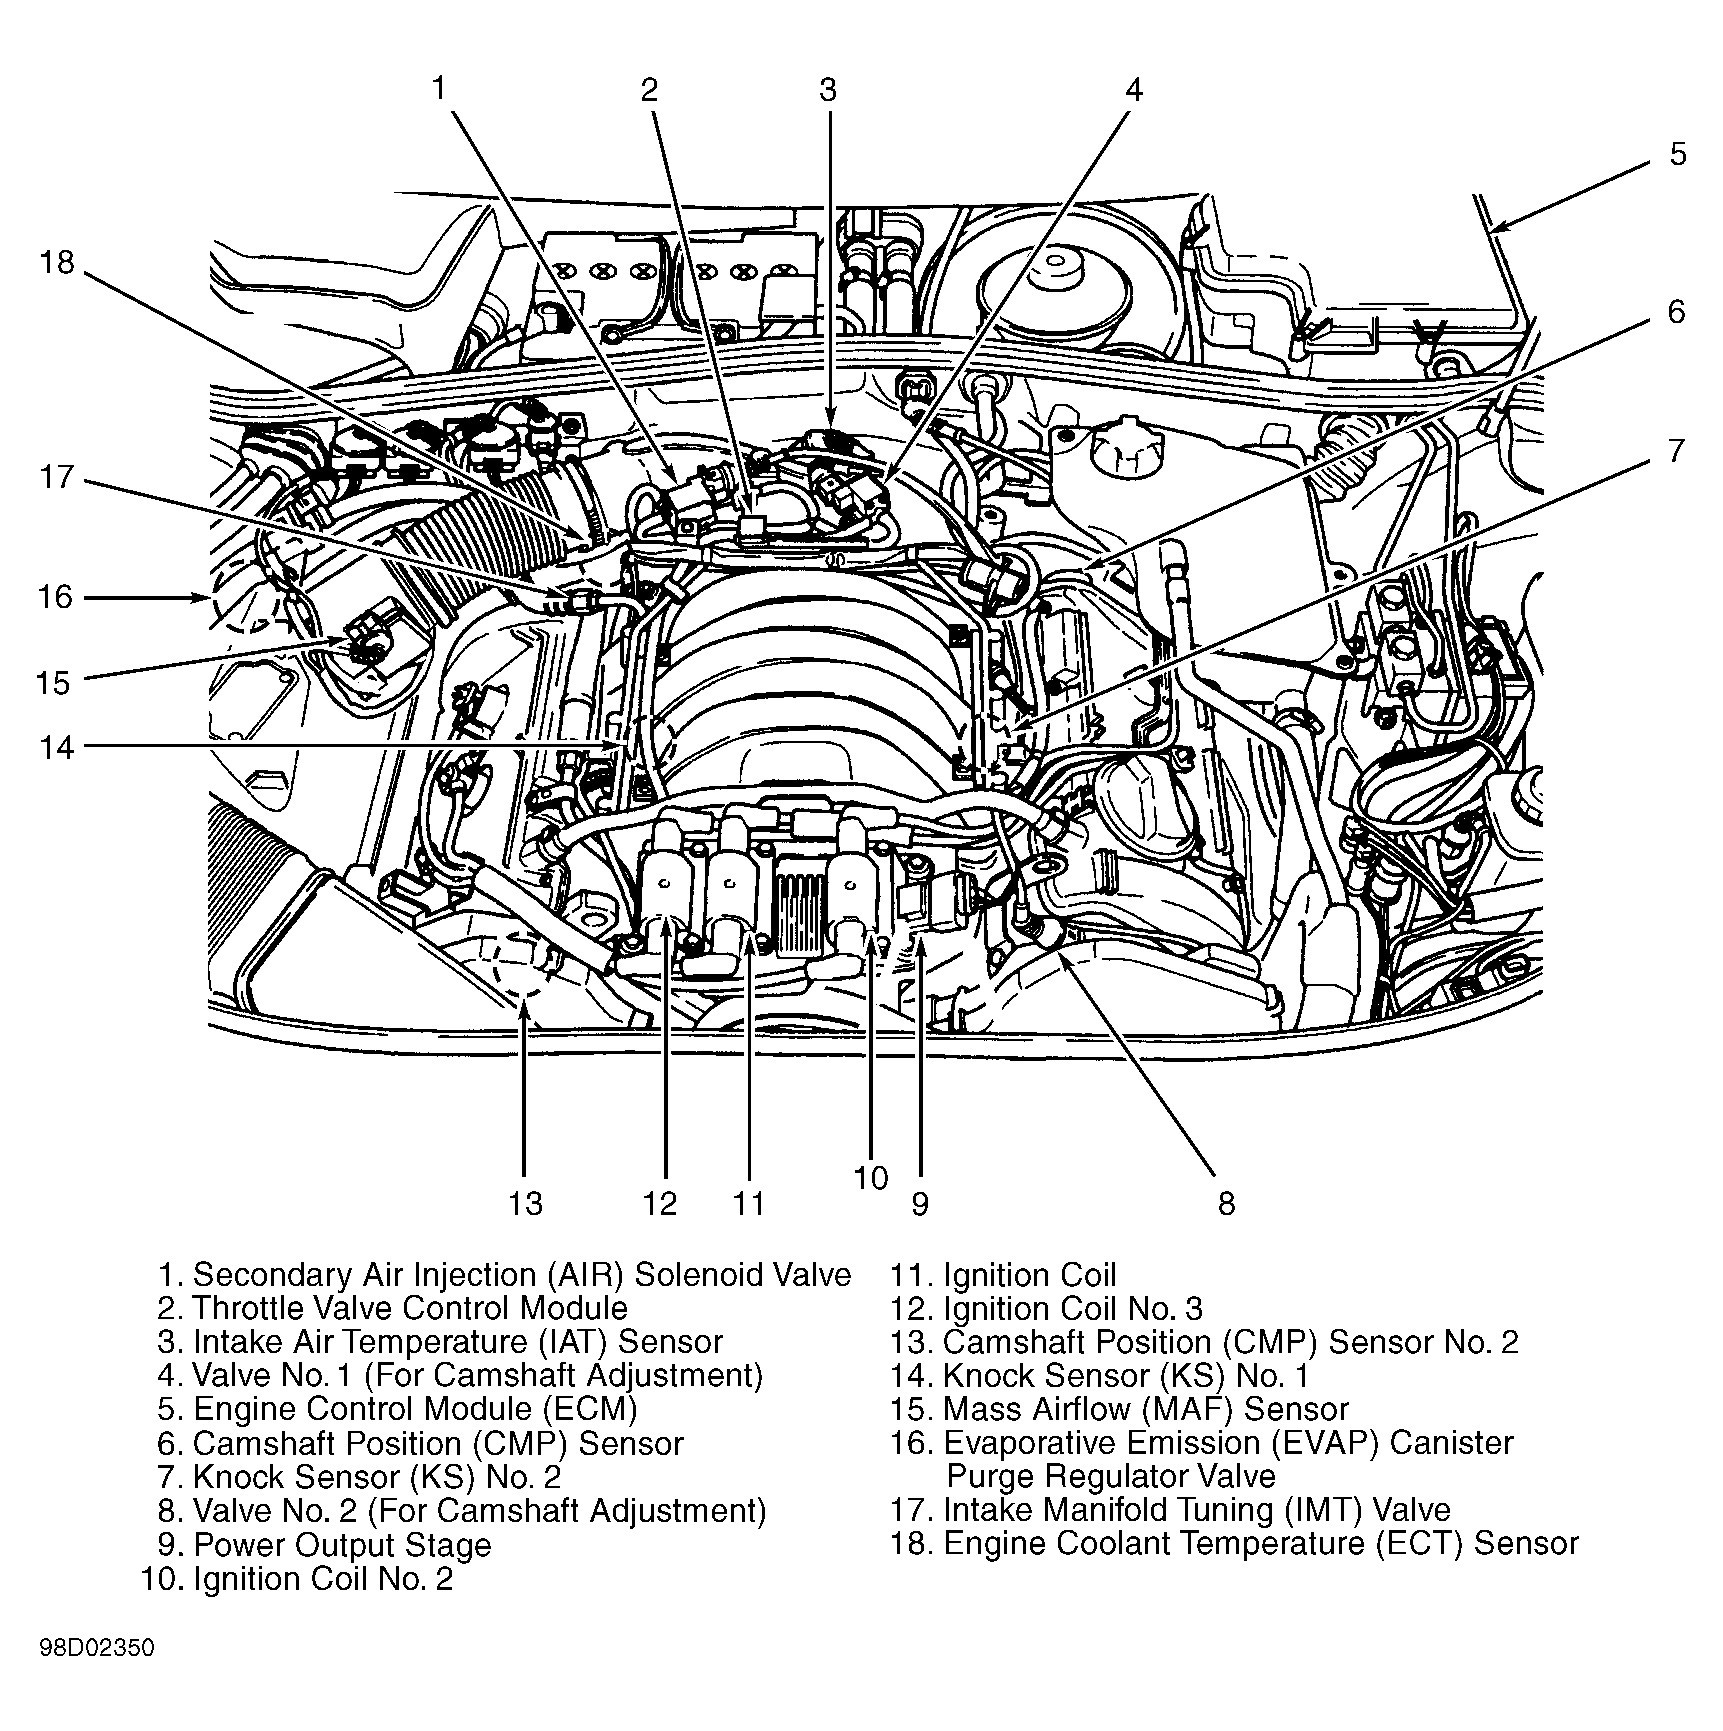 Honda Del Sol Engine Diagram 2008 Civic Oil Intake Manifold Wiring Diagrams Instructions Of